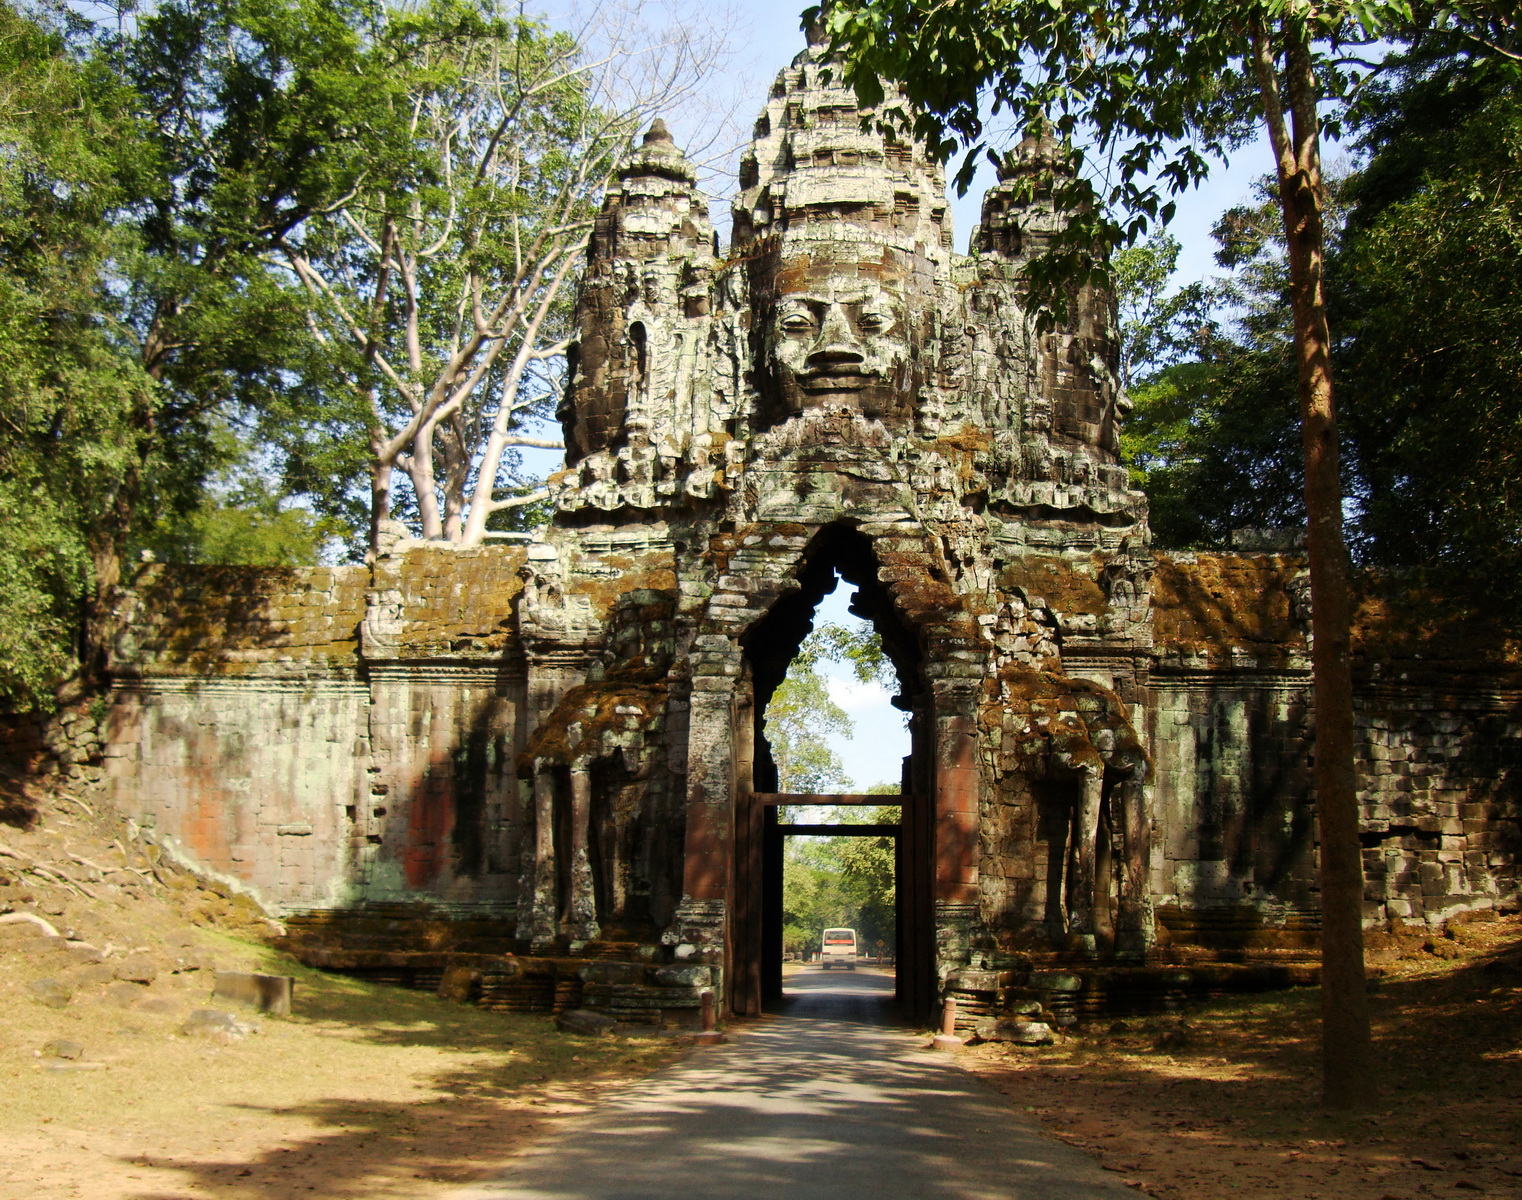 Angkor Wat style architecture North Gate Jan 2010 15